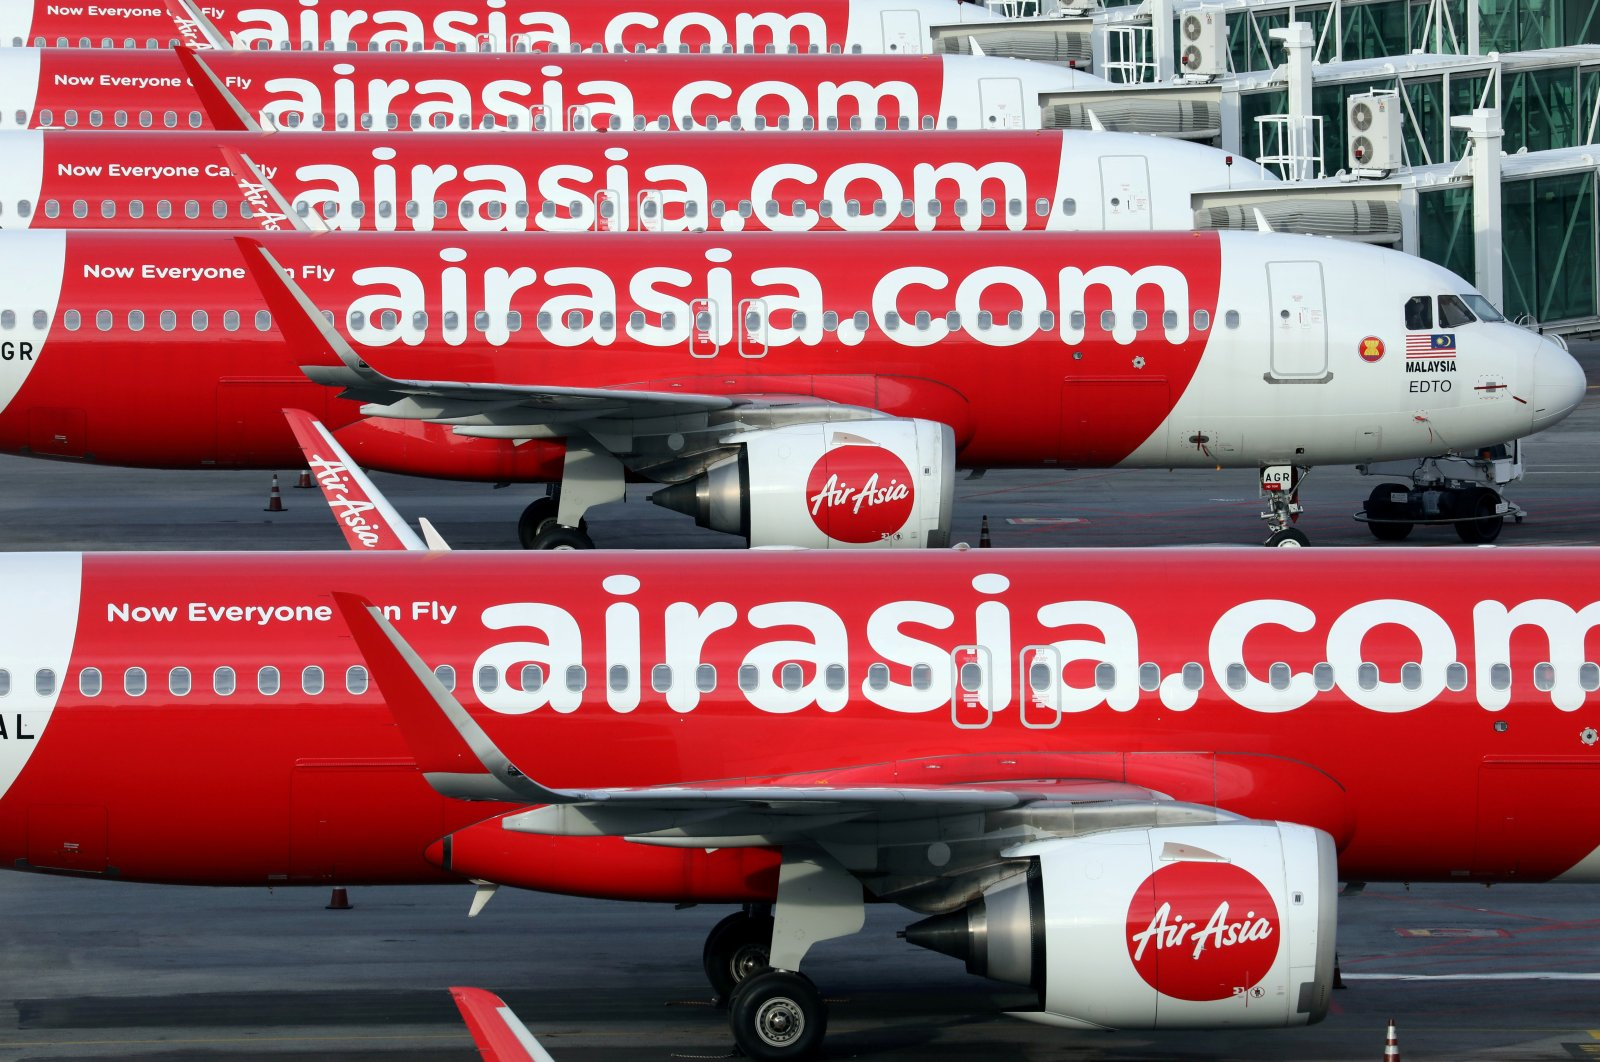 AirAsia planes are parked at Kuala Lumpur International Airport 2, in Sepang, Malaysia, Oct. 6, 2020. (Reuters Photo)